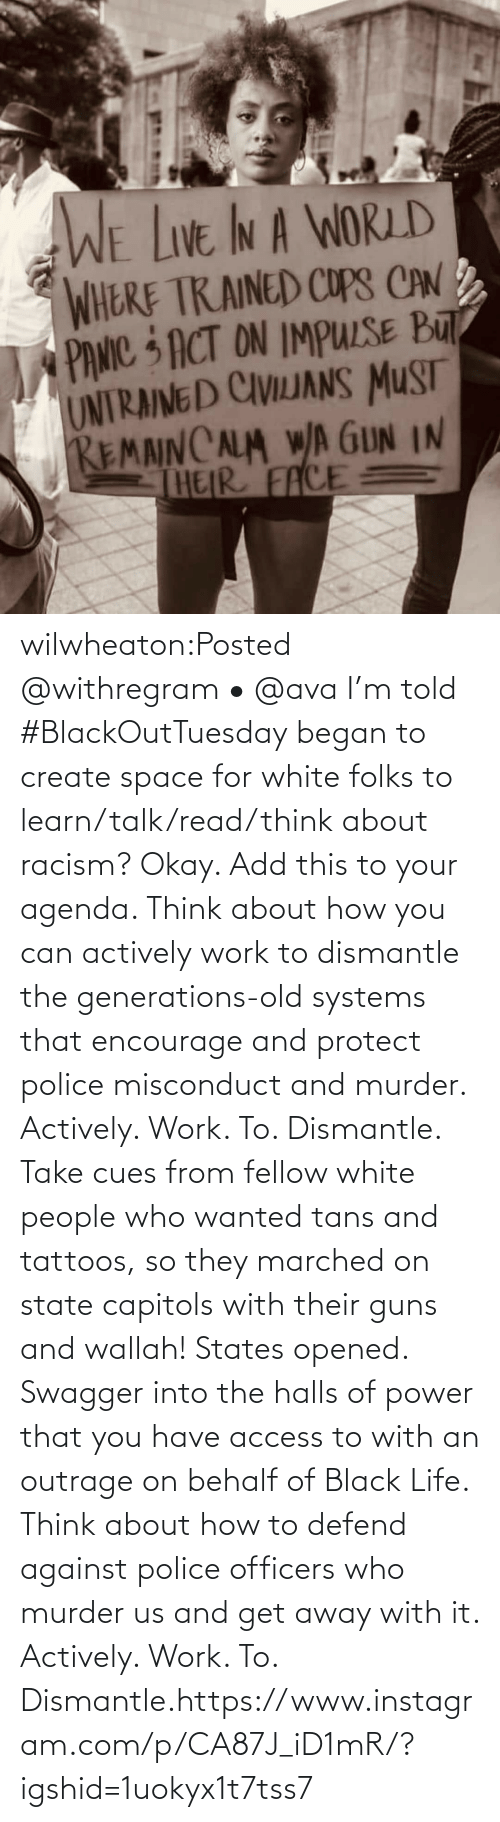 Old: wilwheaton:Posted @withregram • @ava I'm told #BlackOutTuesday began to create space for white folks to learn/talk/read/think about racism? Okay. Add this to your agenda. Think about how you can actively work to dismantle the generations-old systems that encourage and protect police misconduct and murder. Actively. Work. To. Dismantle. Take cues from fellow white people who wanted tans and tattoos, so they marched on state capitols with their guns and wallah! States opened. Swagger into the halls of power that you have access to with an outrage on behalf of Black Life. Think about how to defend against police officers who murder us and get away with it. Actively. Work. To. Dismantle.https://www.instagram.com/p/CA87J_iD1mR/?igshid=1uokyx1t7tss7